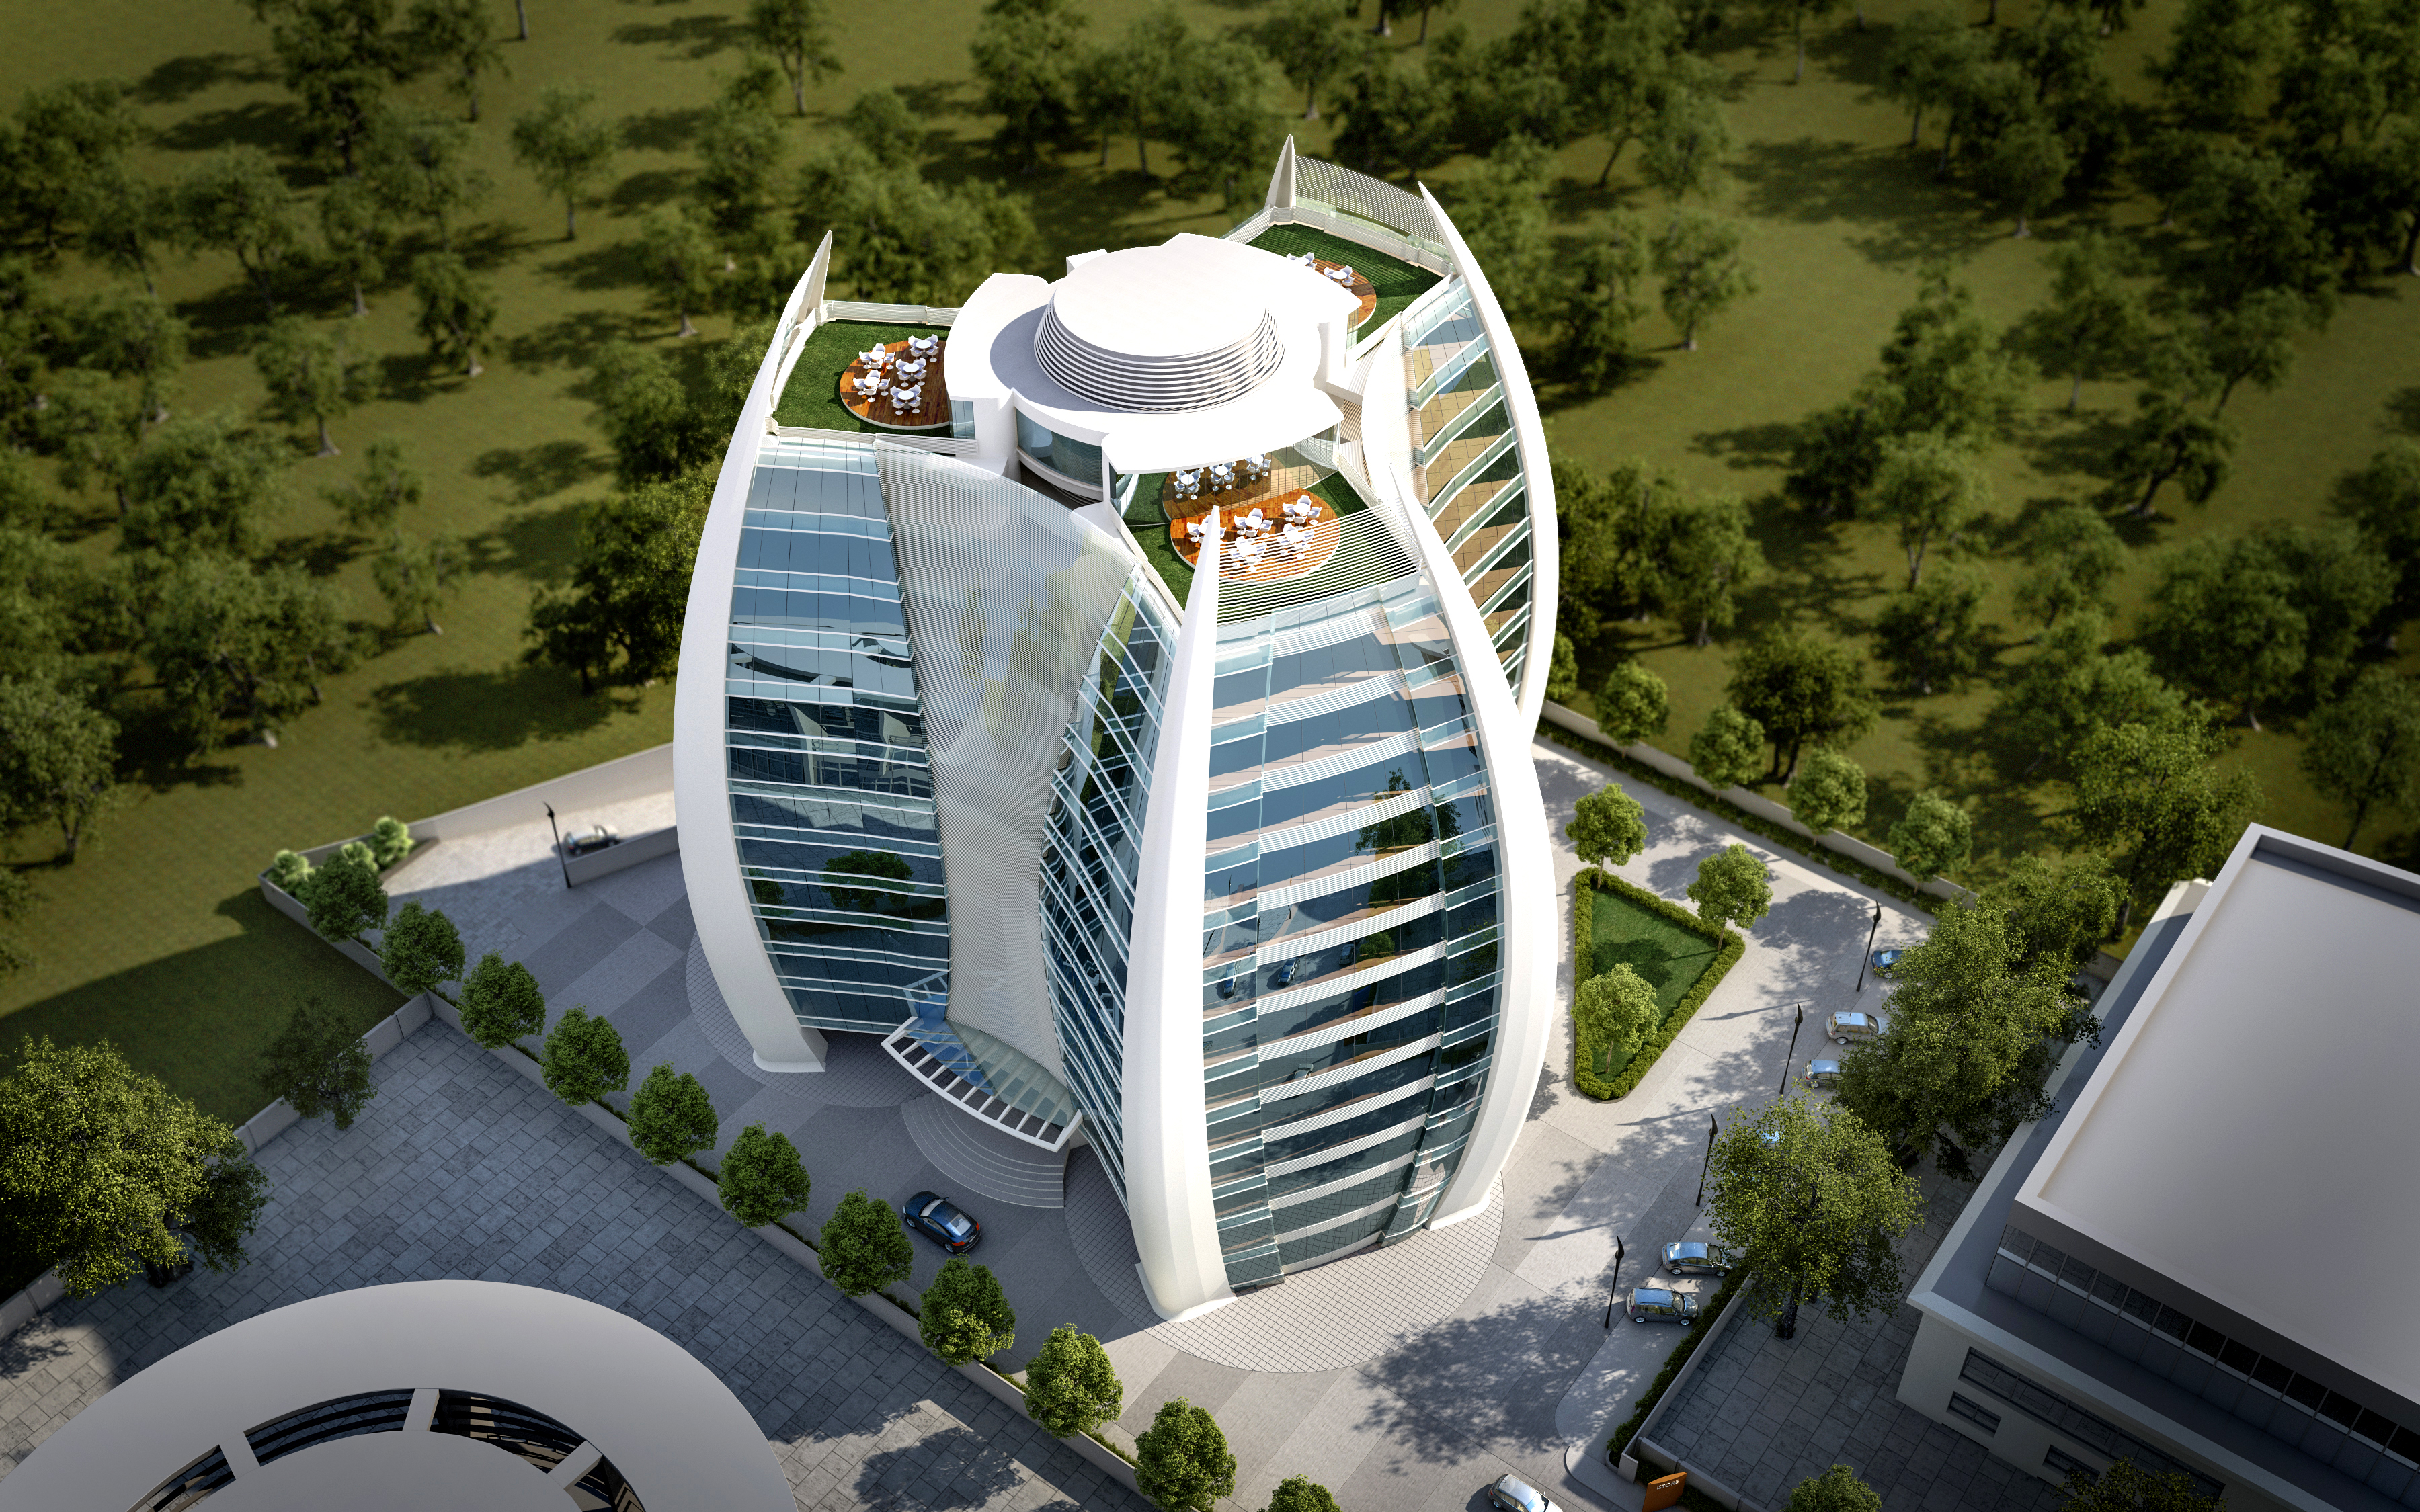 VYOM Designs Unique Office Building in Western India   Civil + Structural Engineer magazine